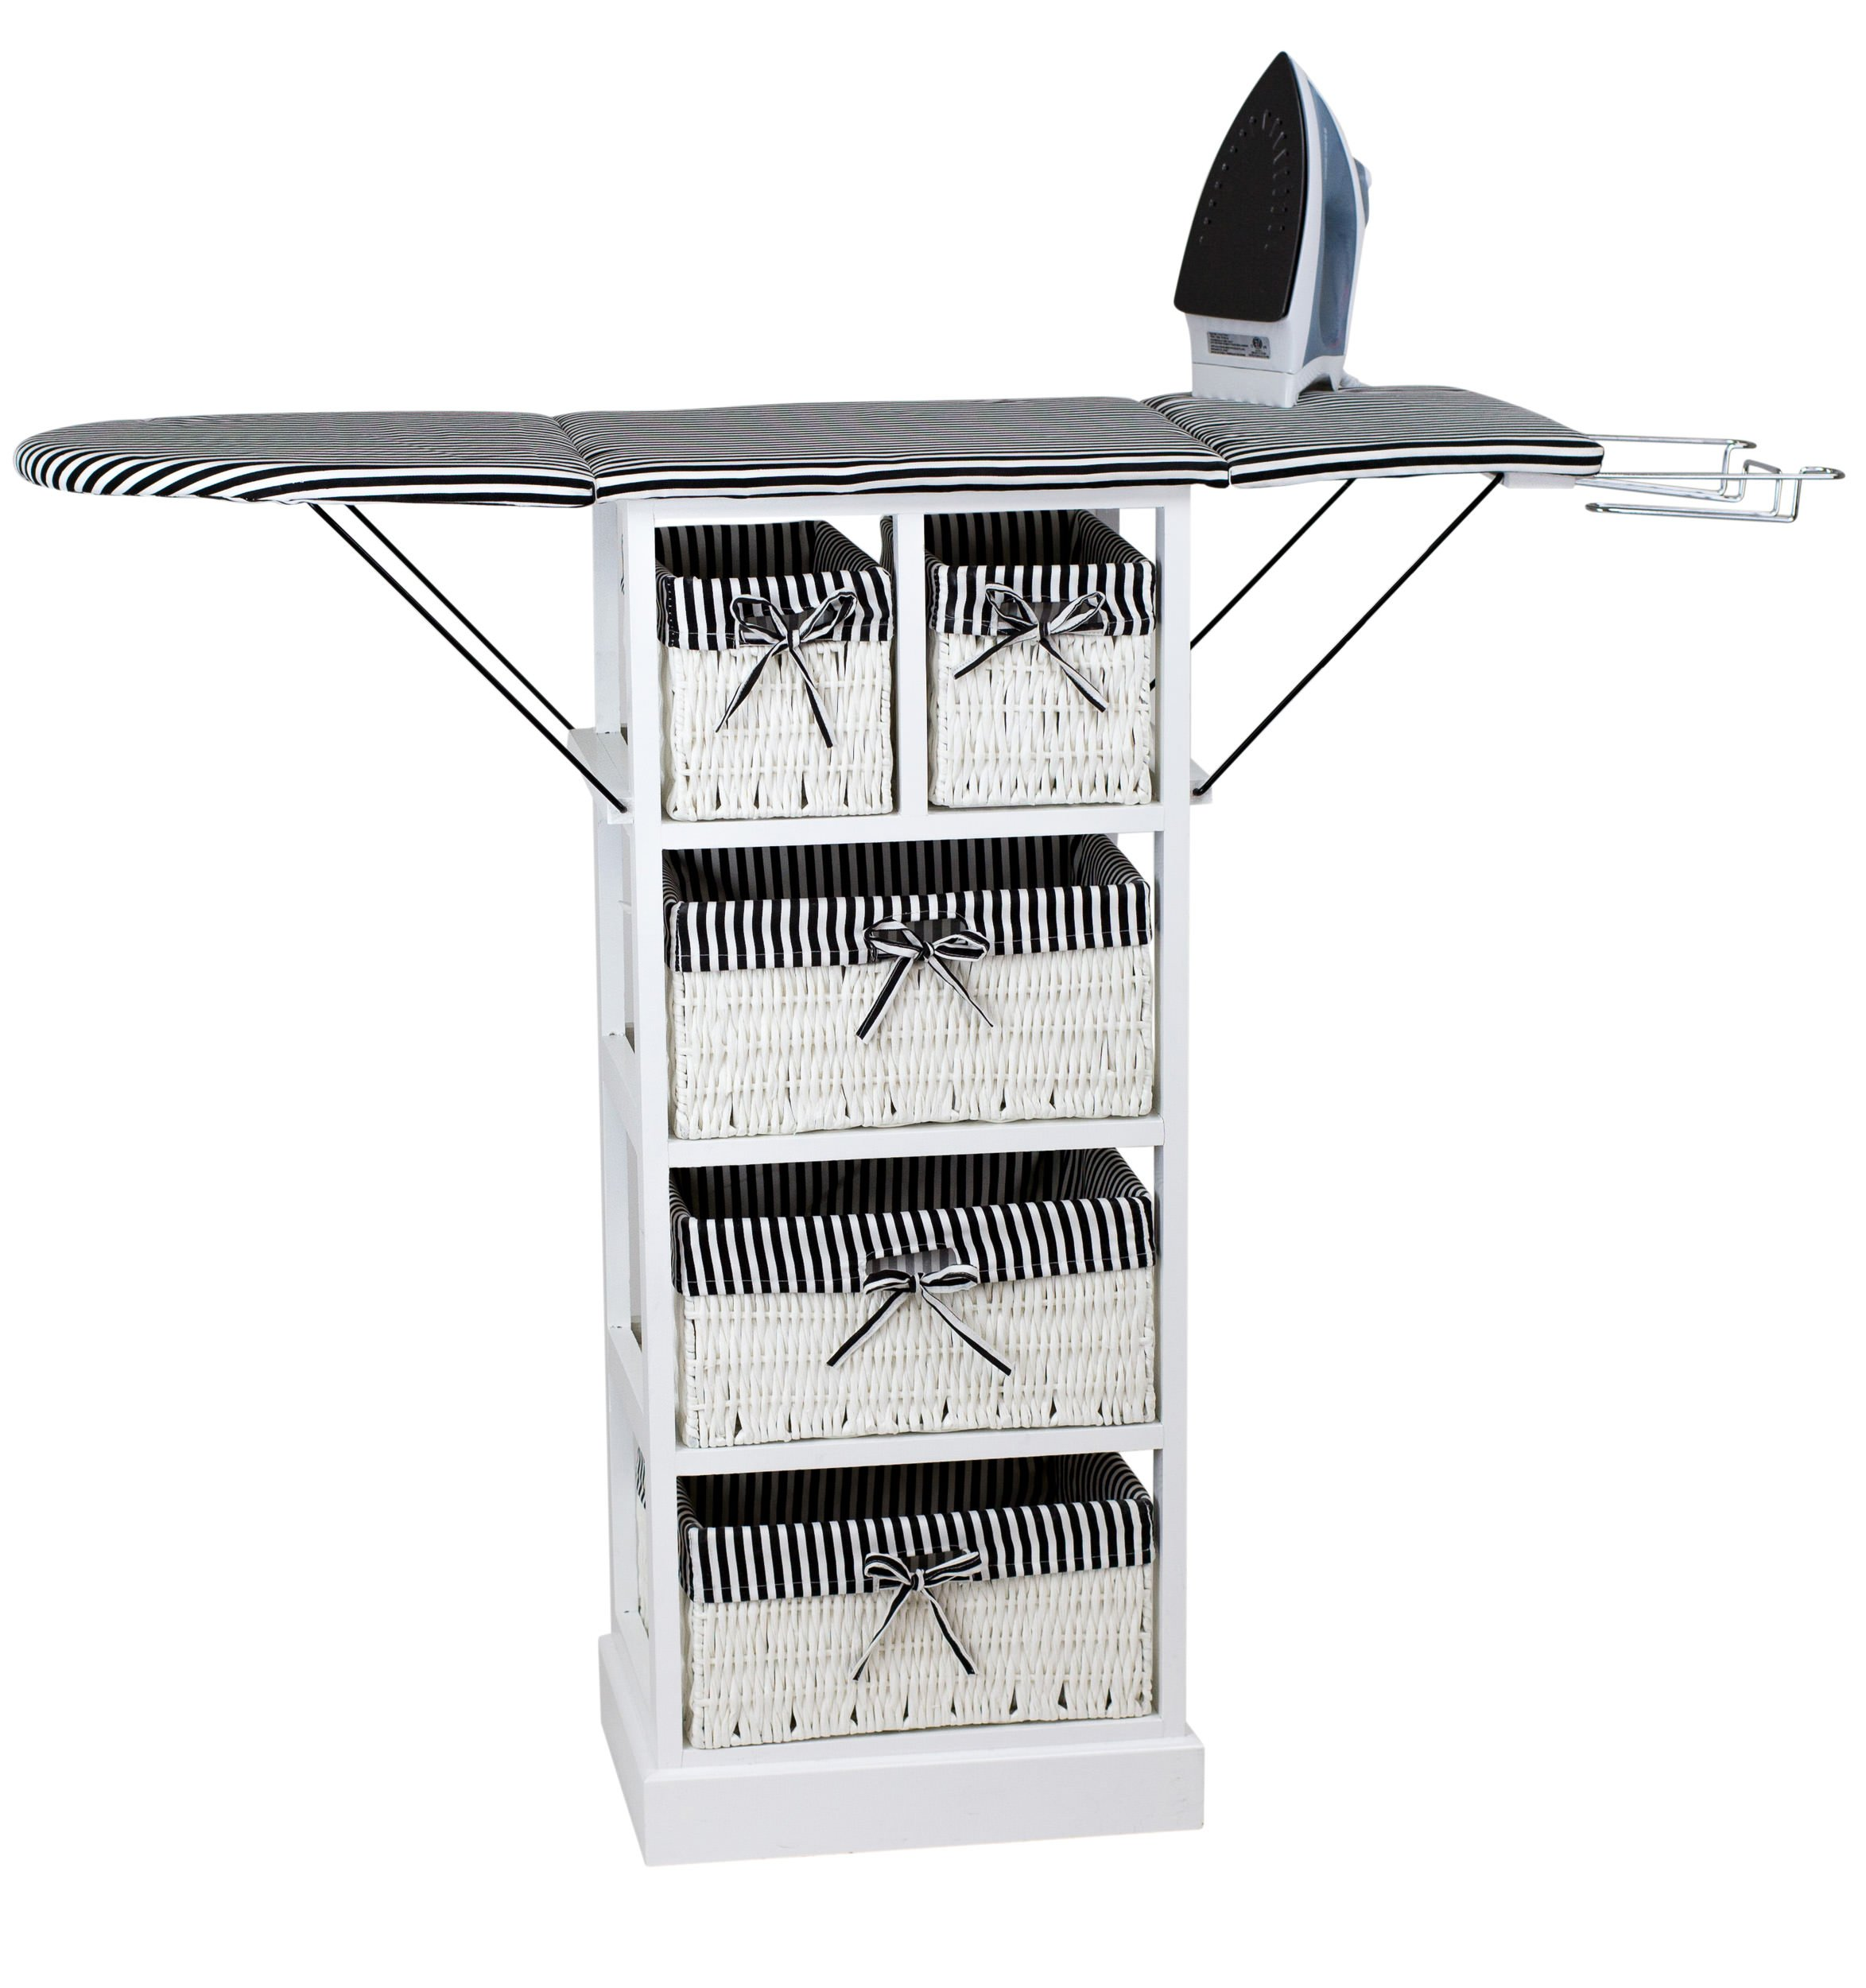 SpaceMaster Corner Housewares Ironing Board Center (38'' Standard Height), One Size by SpaceMaster (Image #3)